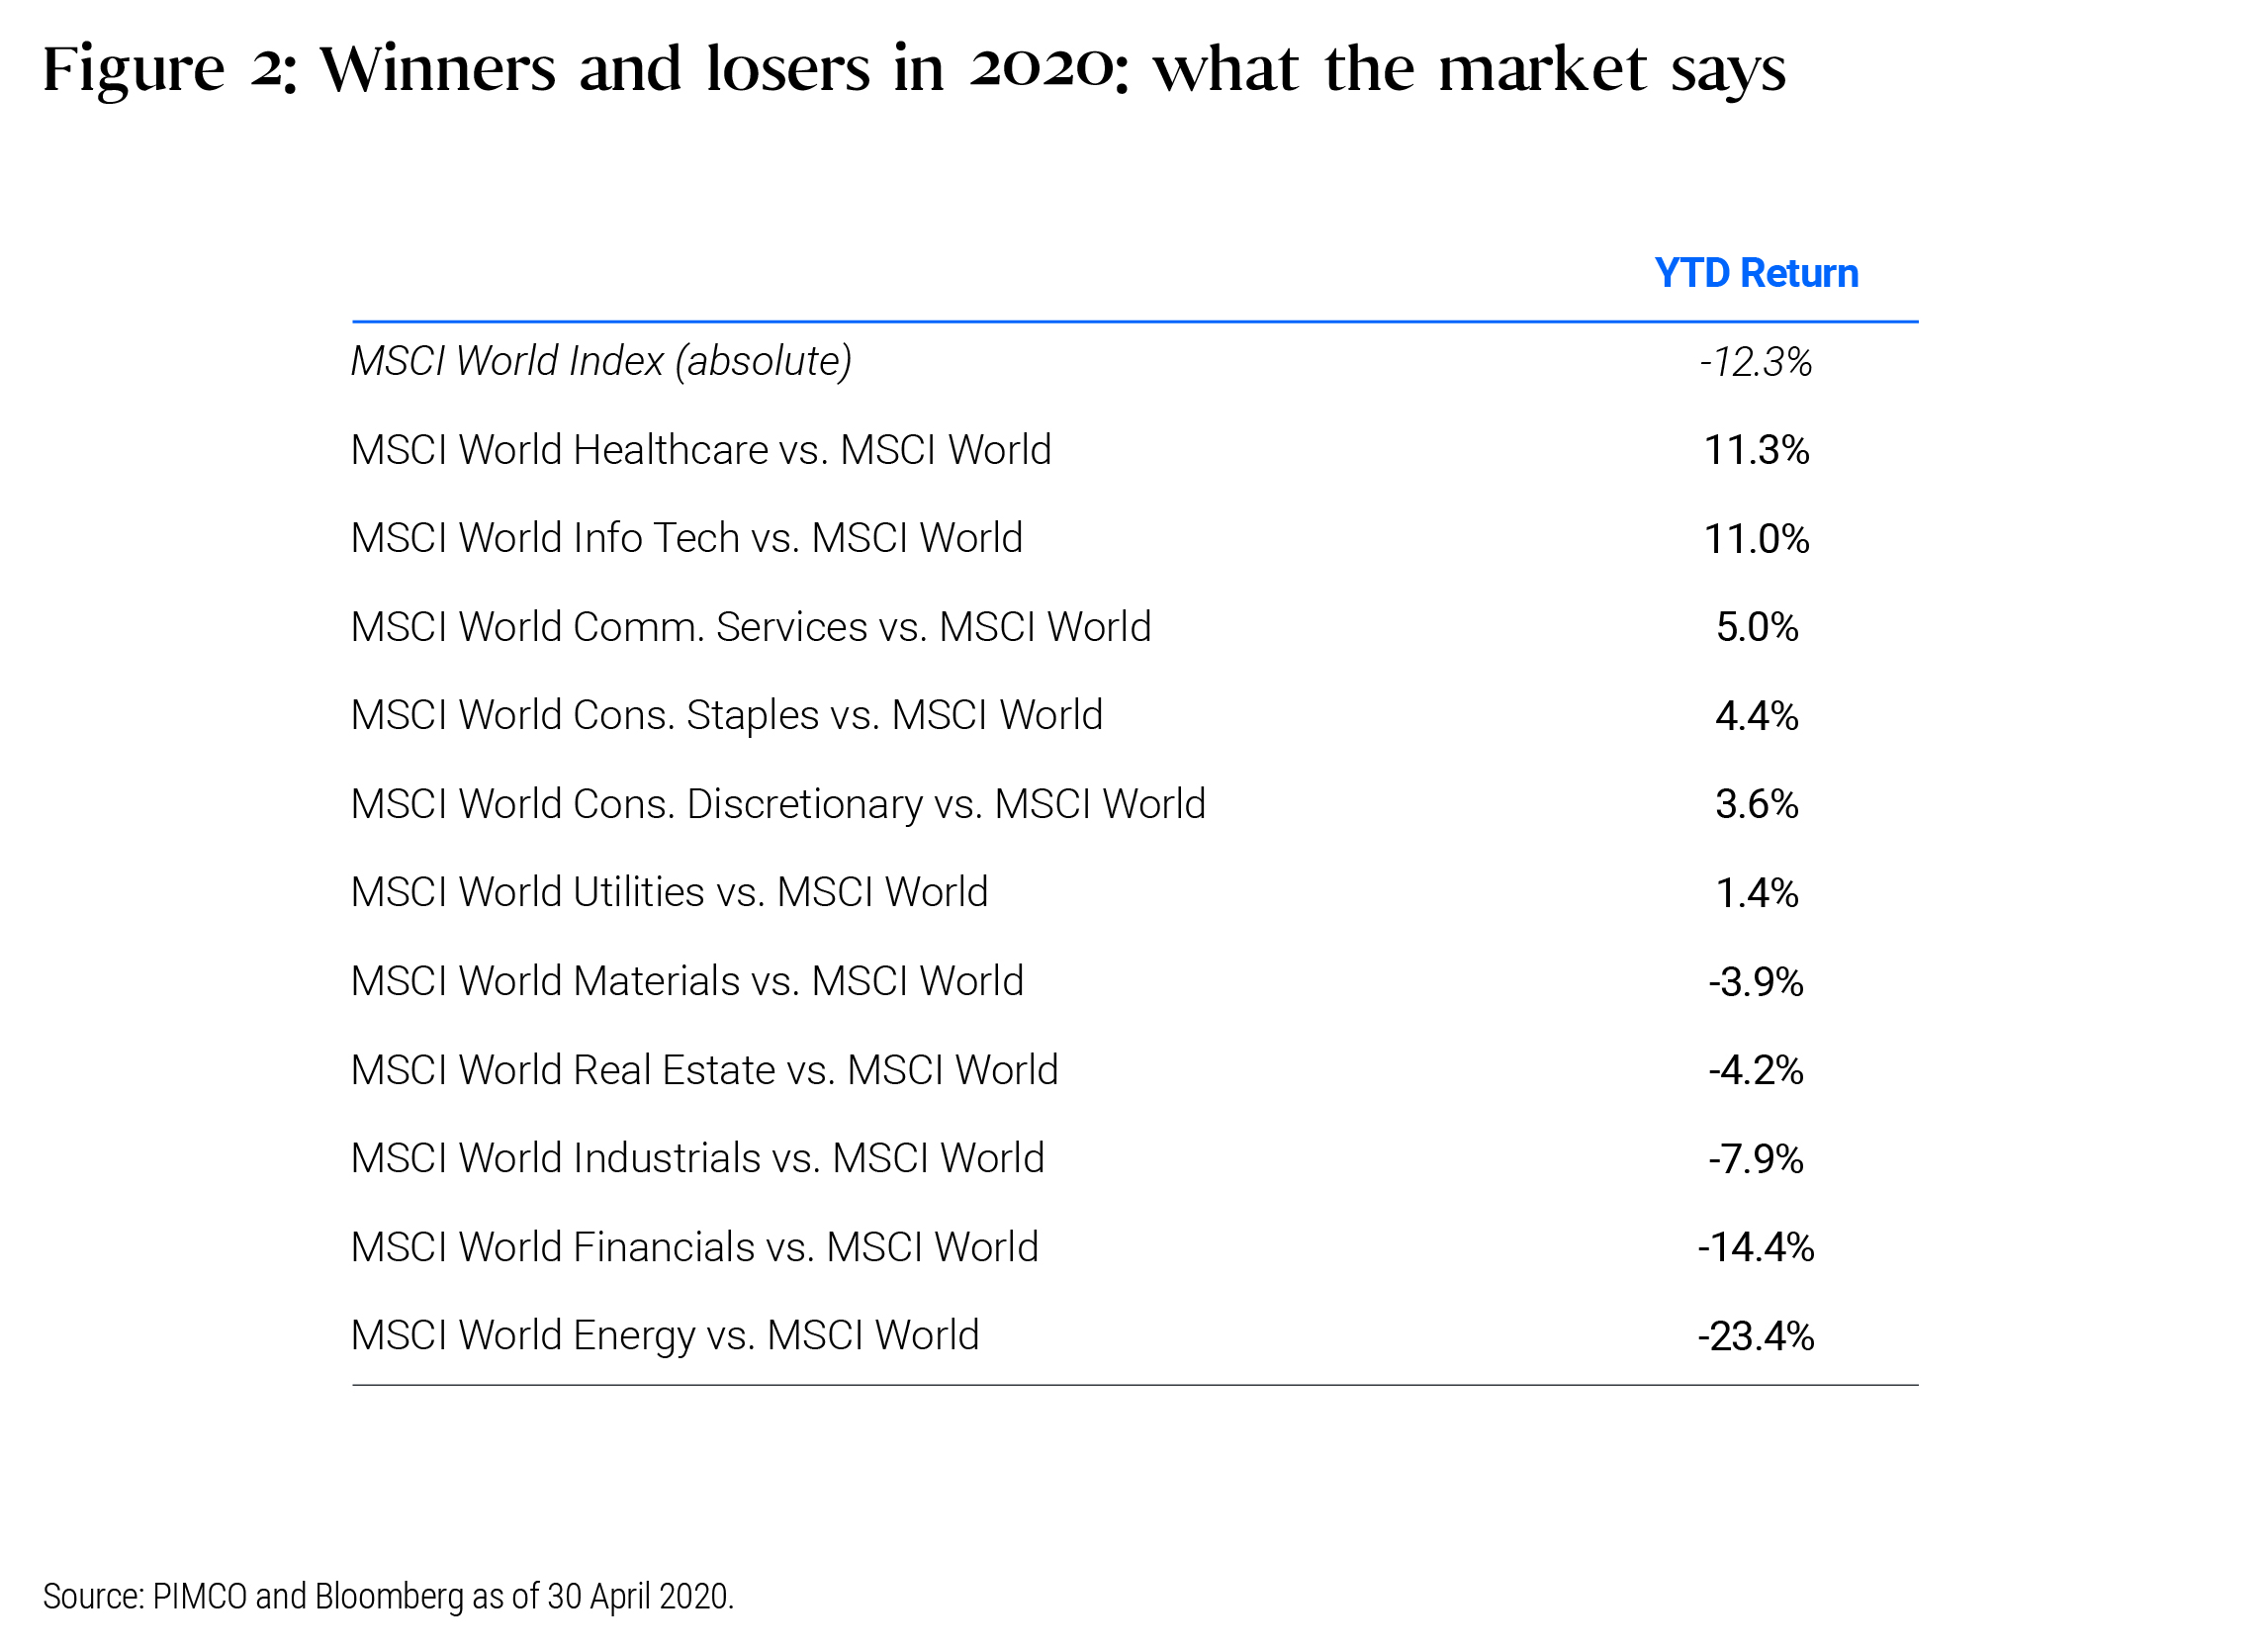 Figure 2: The performance of each industry sector in the MSCI World Index compared to the performance of the entire index between December 31st 2019 and April 30th 2020.